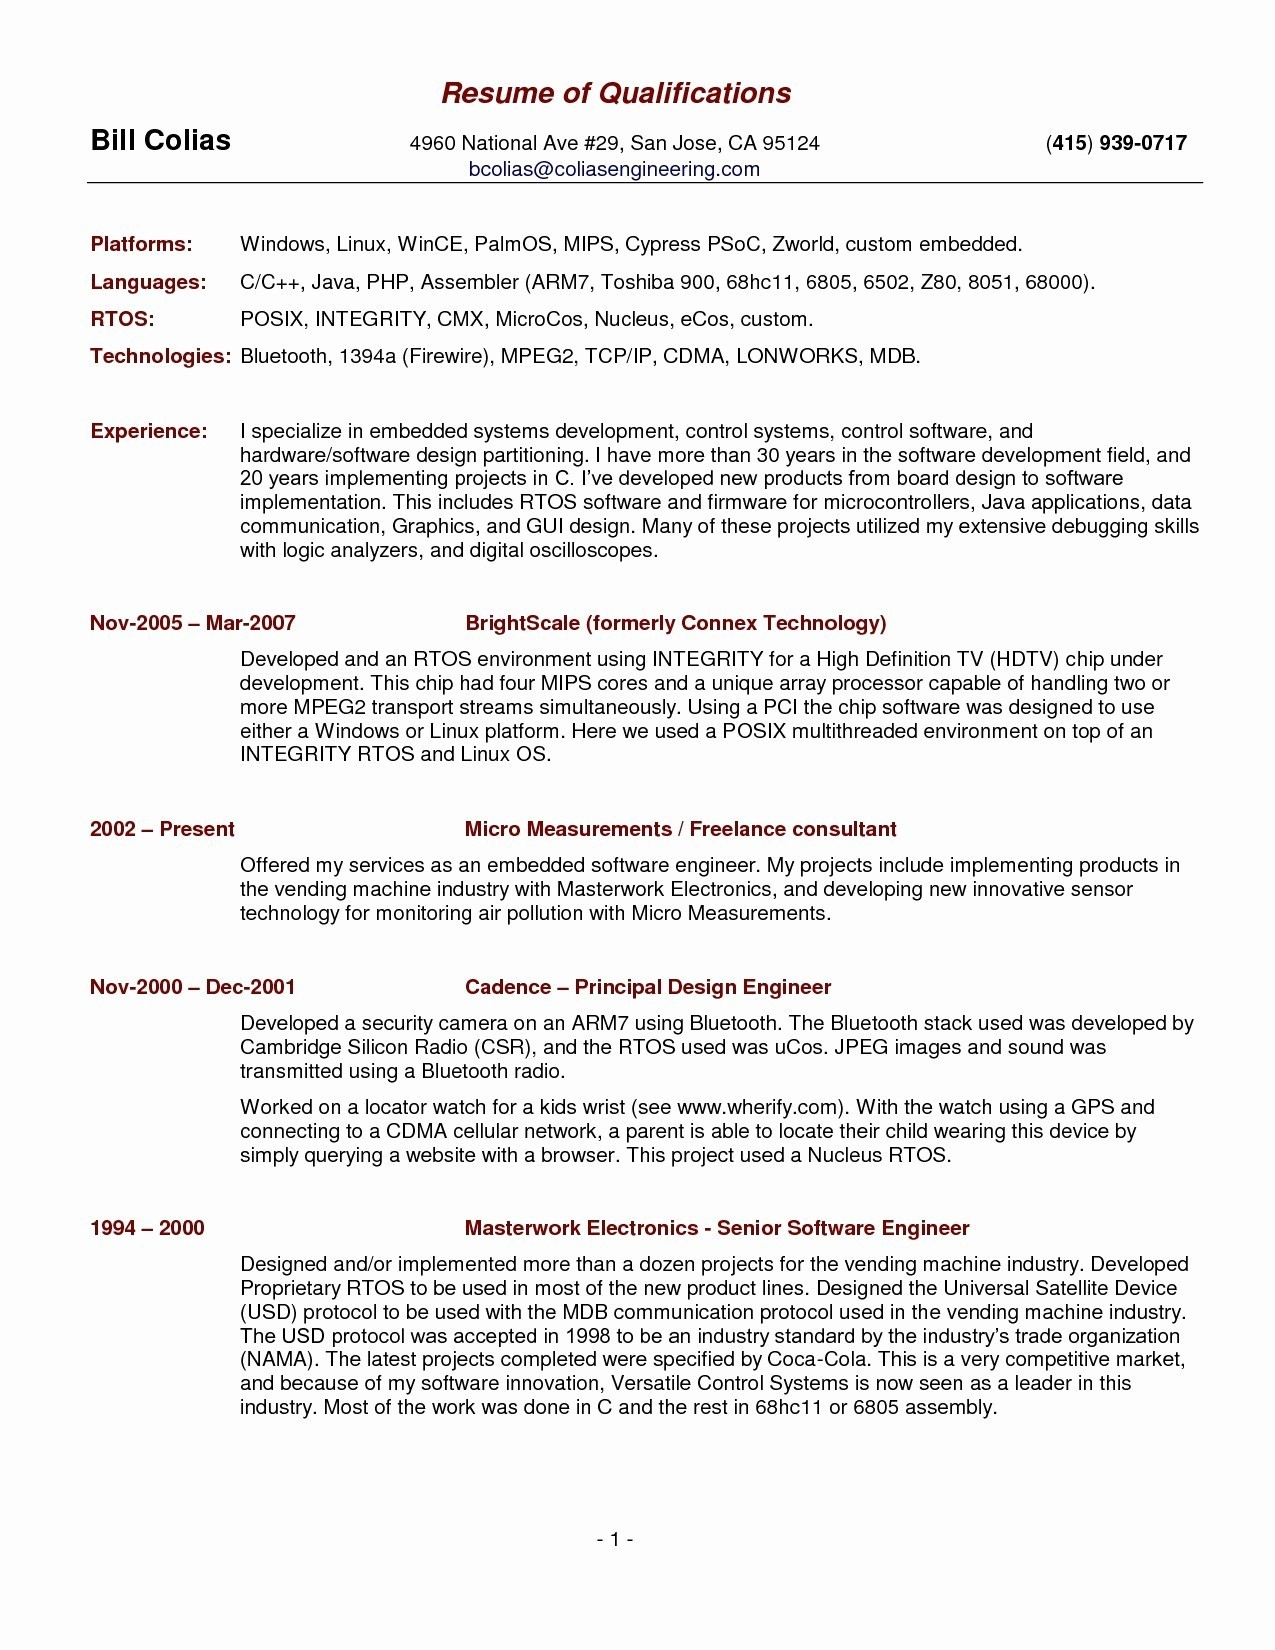 Resume for Buyer - assistant Buyer Resume Inspirational How Write A Resume for A Job